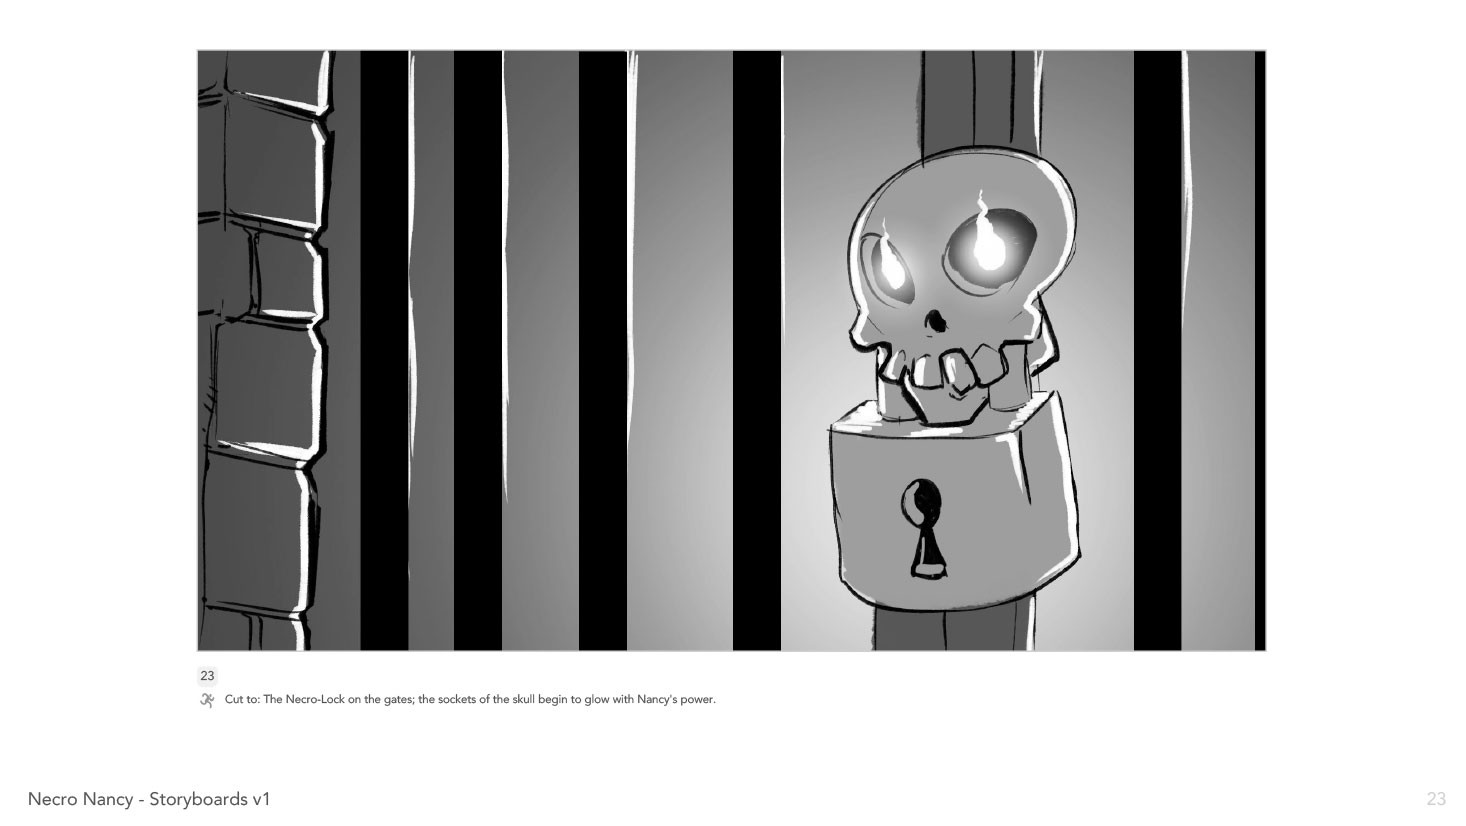 Chx welch necro nancy storyboards 24